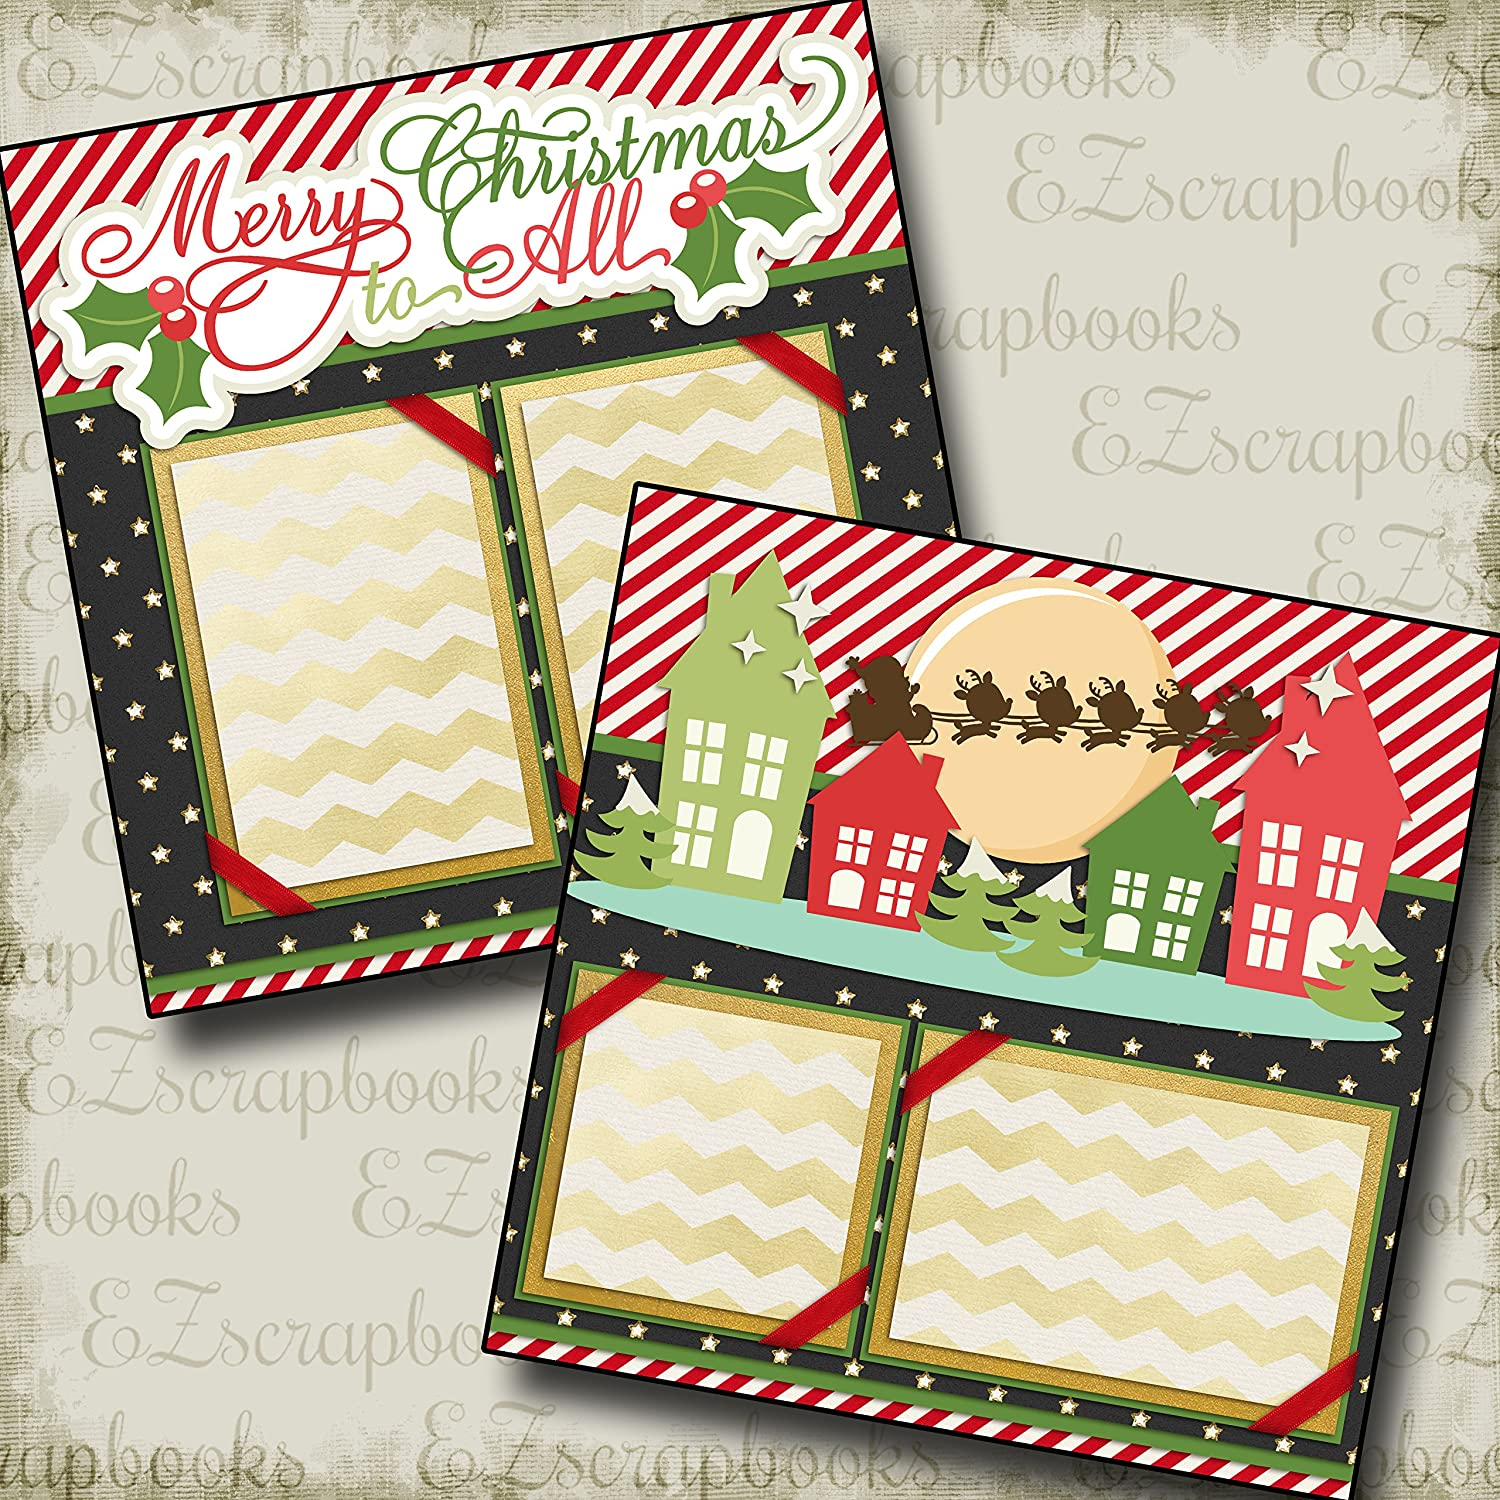 Merry Christmas  Premade  12x12 Scrapbook Pages for your FAMILY and Album